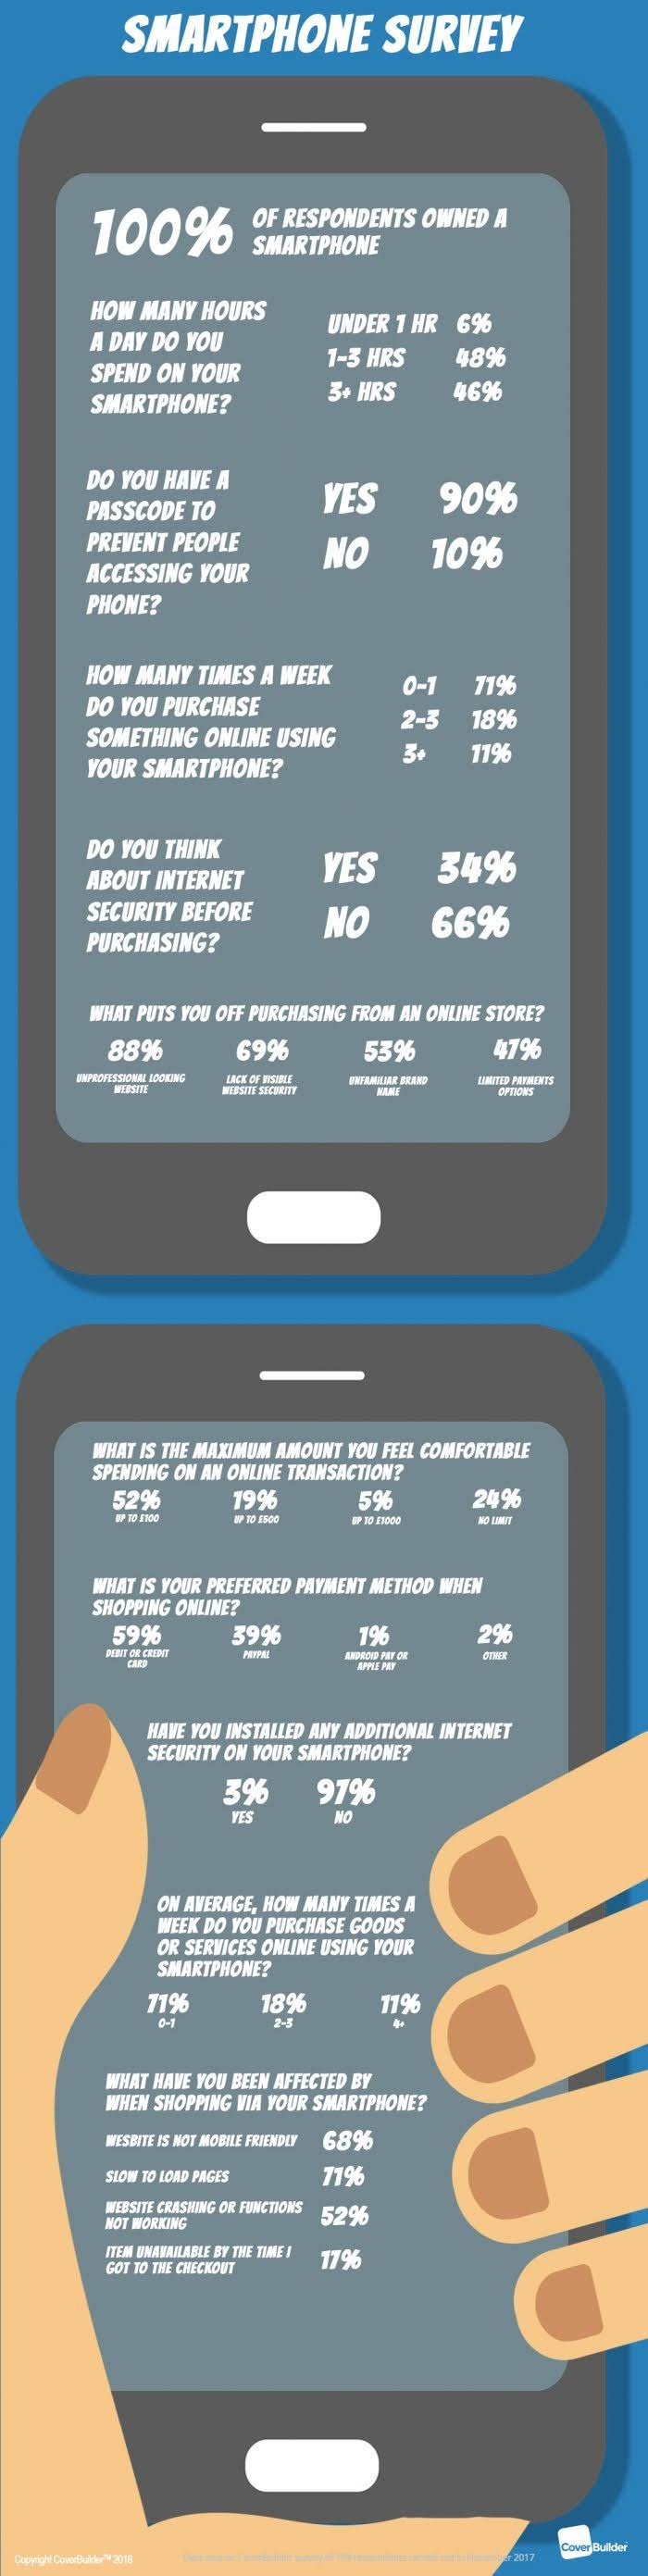 Consumer smartphone use and attitude to internet security #infographic